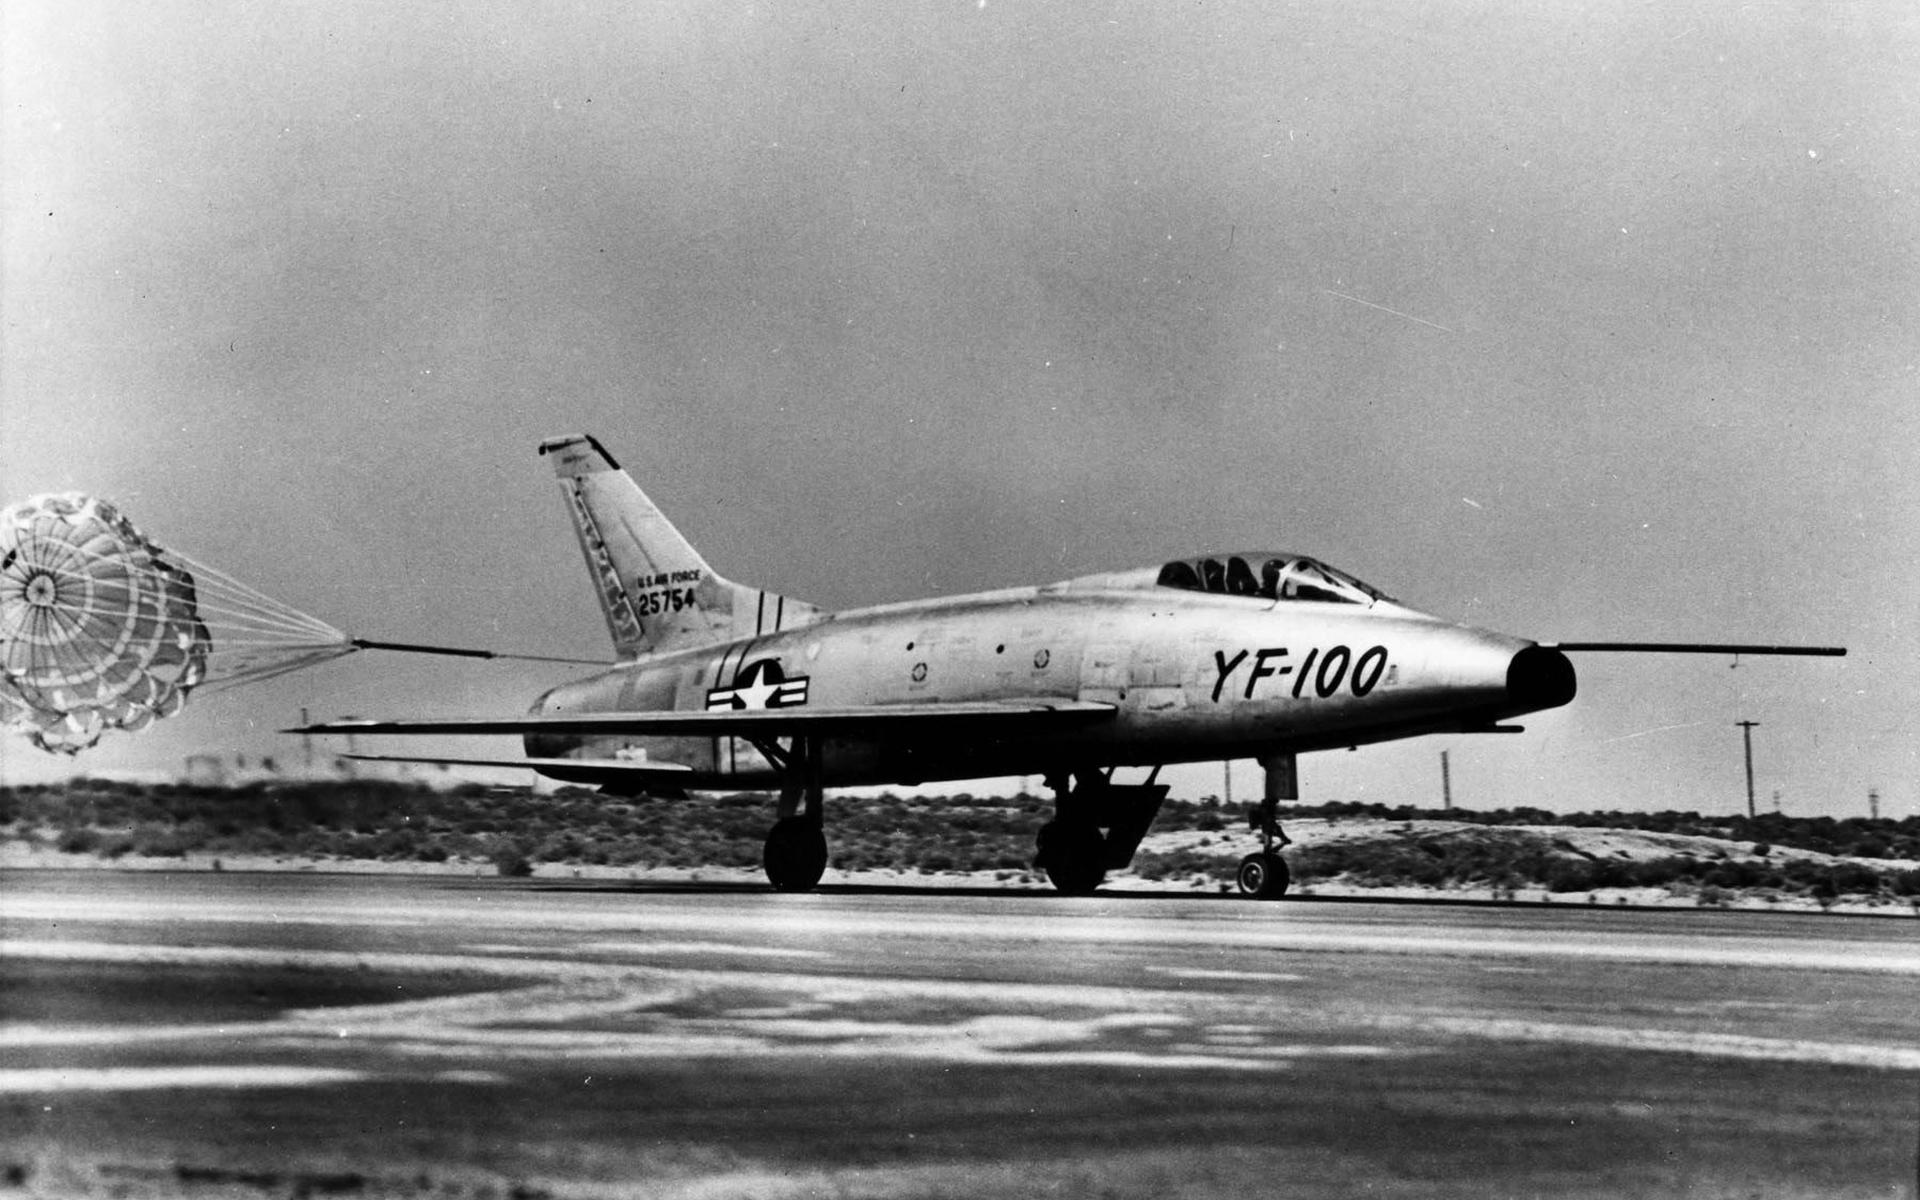 North American F-100 Super Sabre wallpapers HD quality